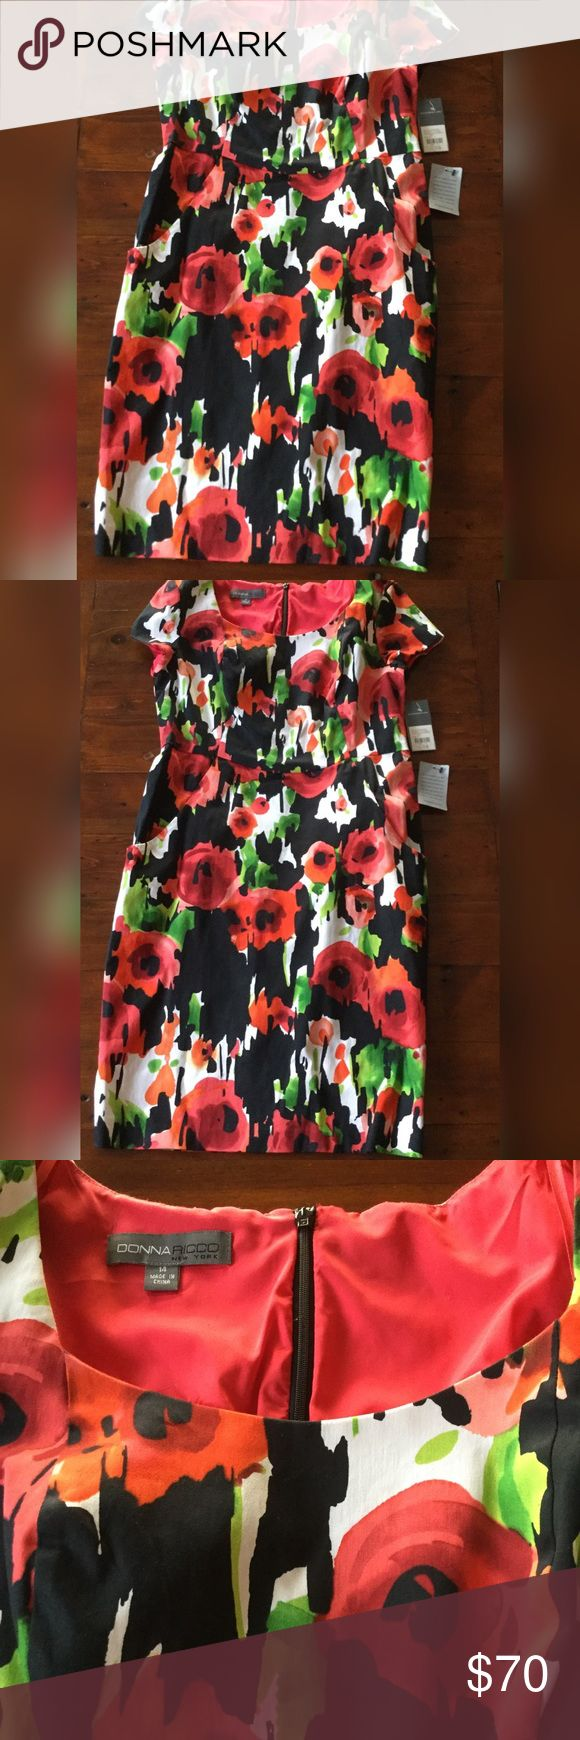 "Donna Ricco Dress Donna Ricco New York dress purchased at Nordstrom and is brand new with tags.   Color is black and watermelon with some green and white, and has cap sleeves.  Pocket on each side of the front. Top half has a red lining inside.  Zips up in back (top half).  Material: 97% cotton and 3% spandex Measurements: Bust approx 20"" and length approx 40"".  Size 14. Donna Ricco Dresses Midi"